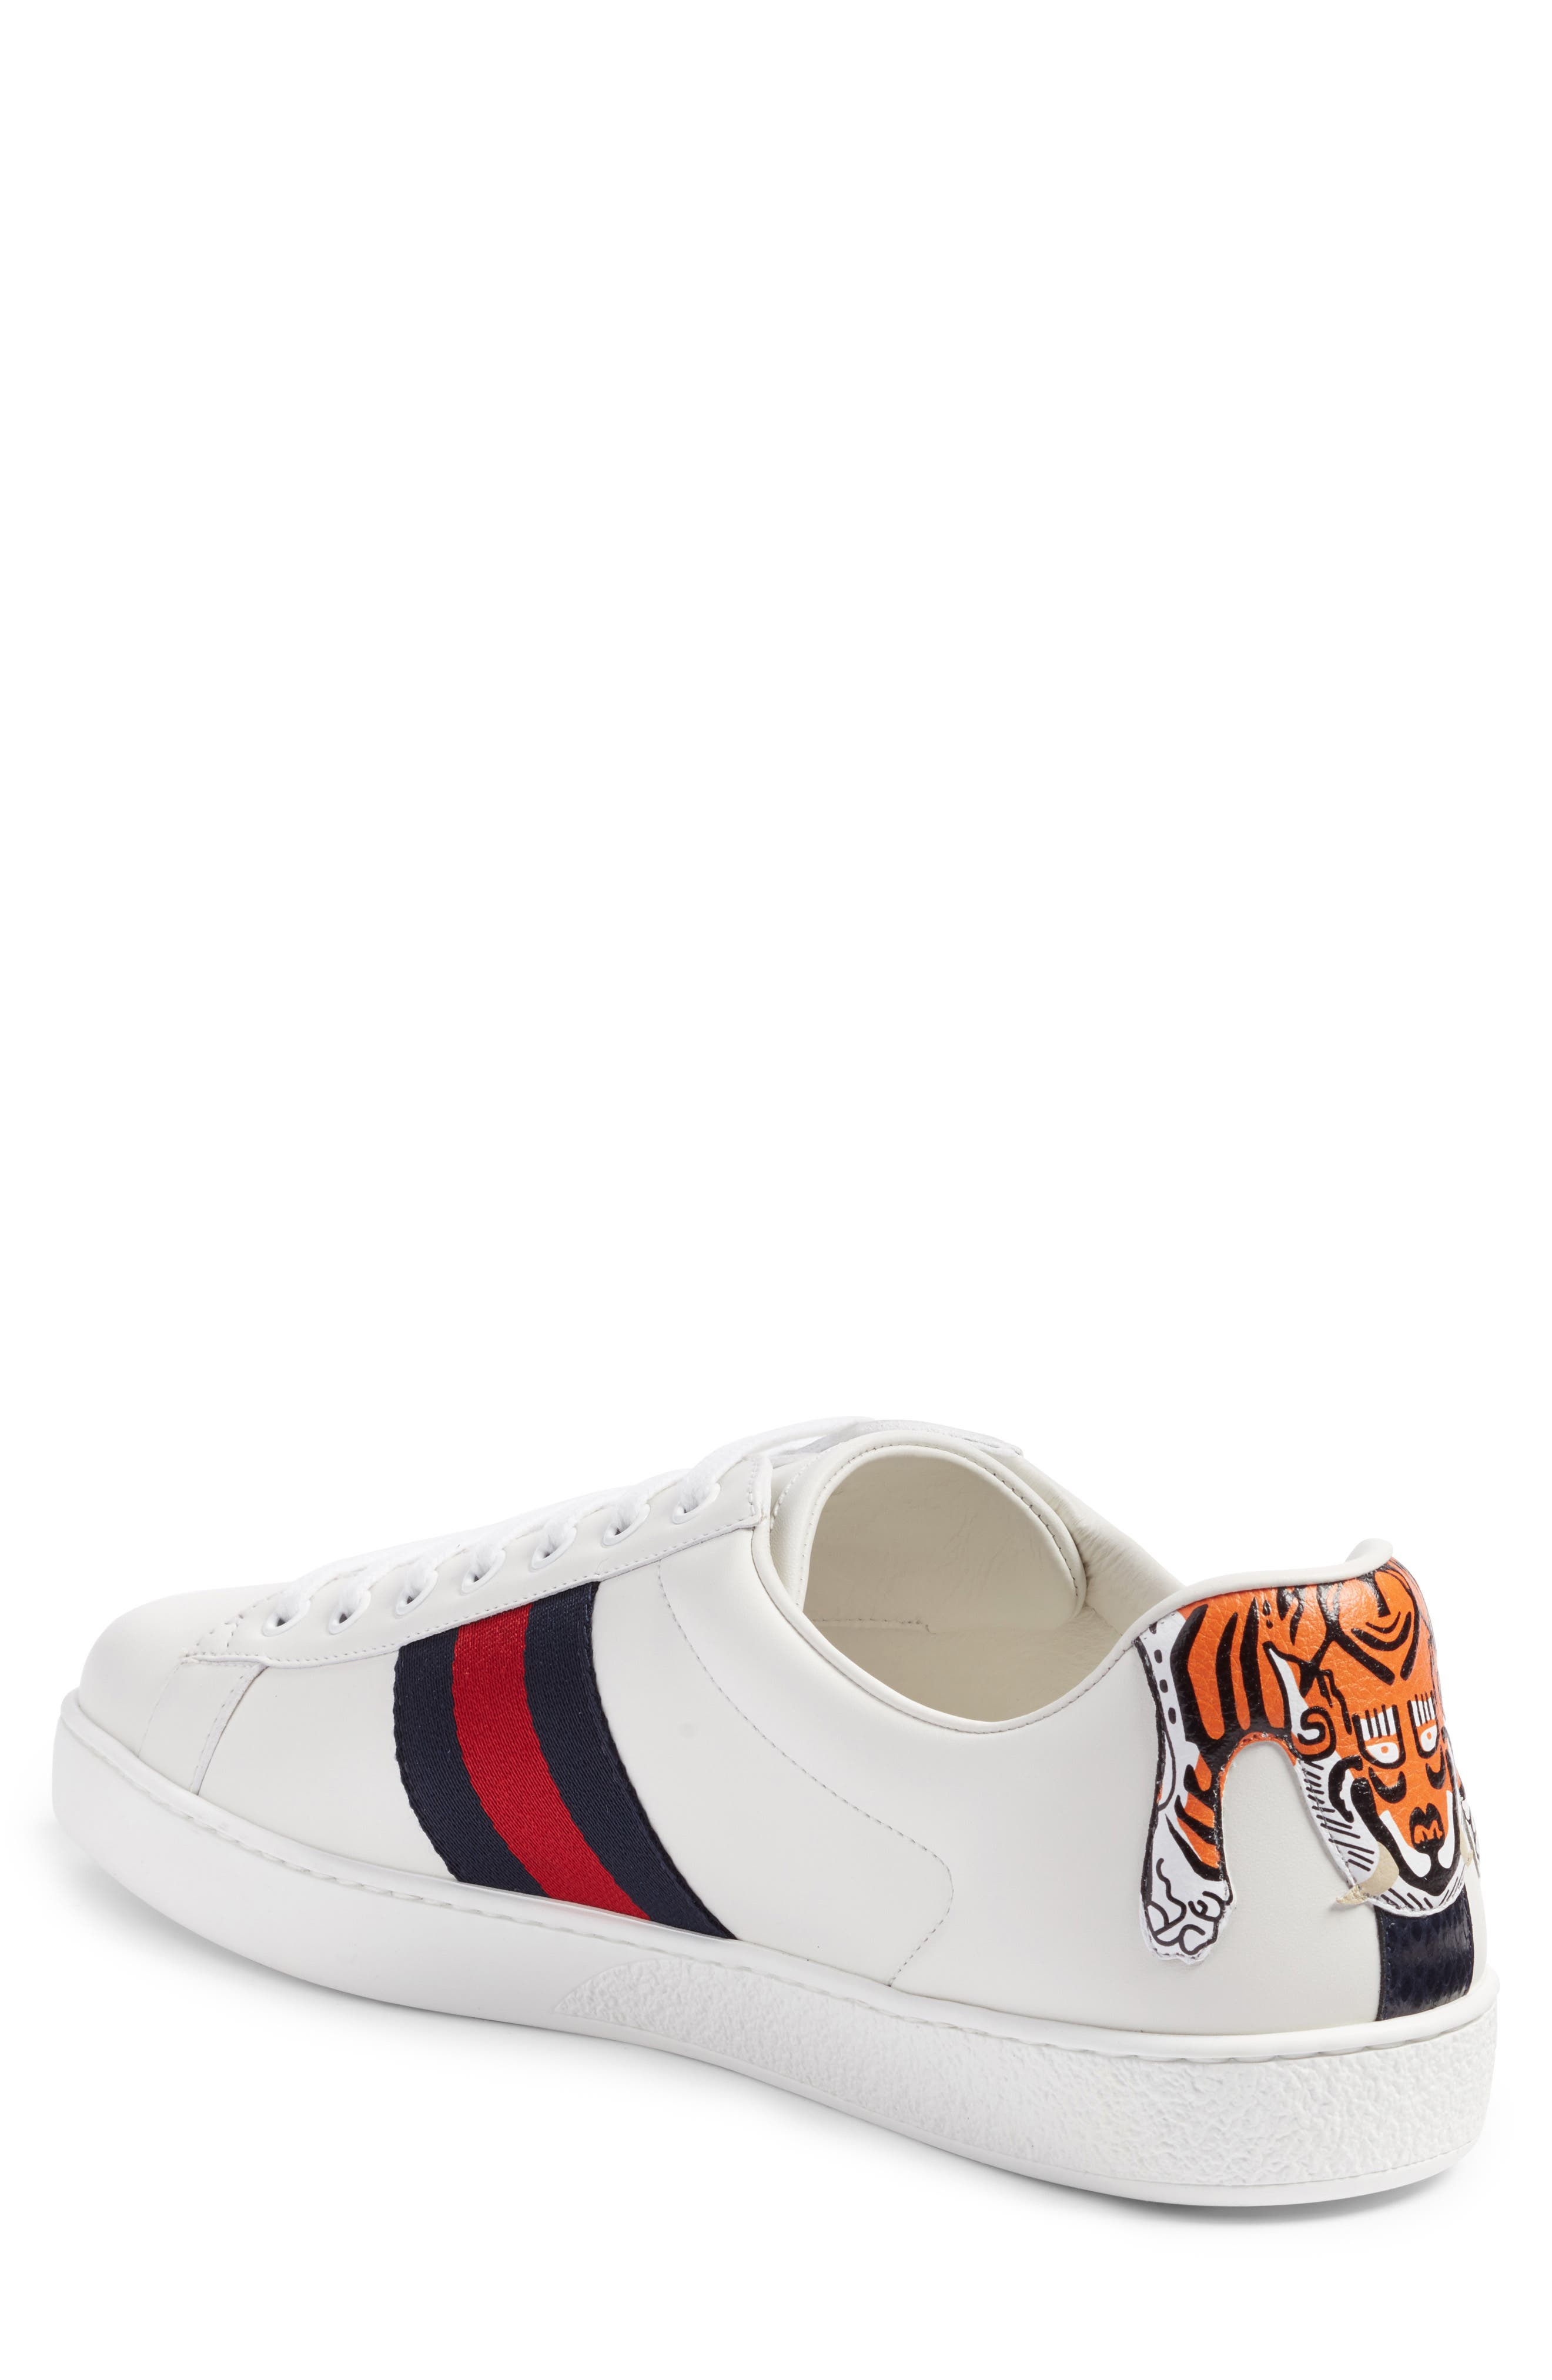 Alternate Image 2  - Gucci New Ace Tiger Sneaker (Men)